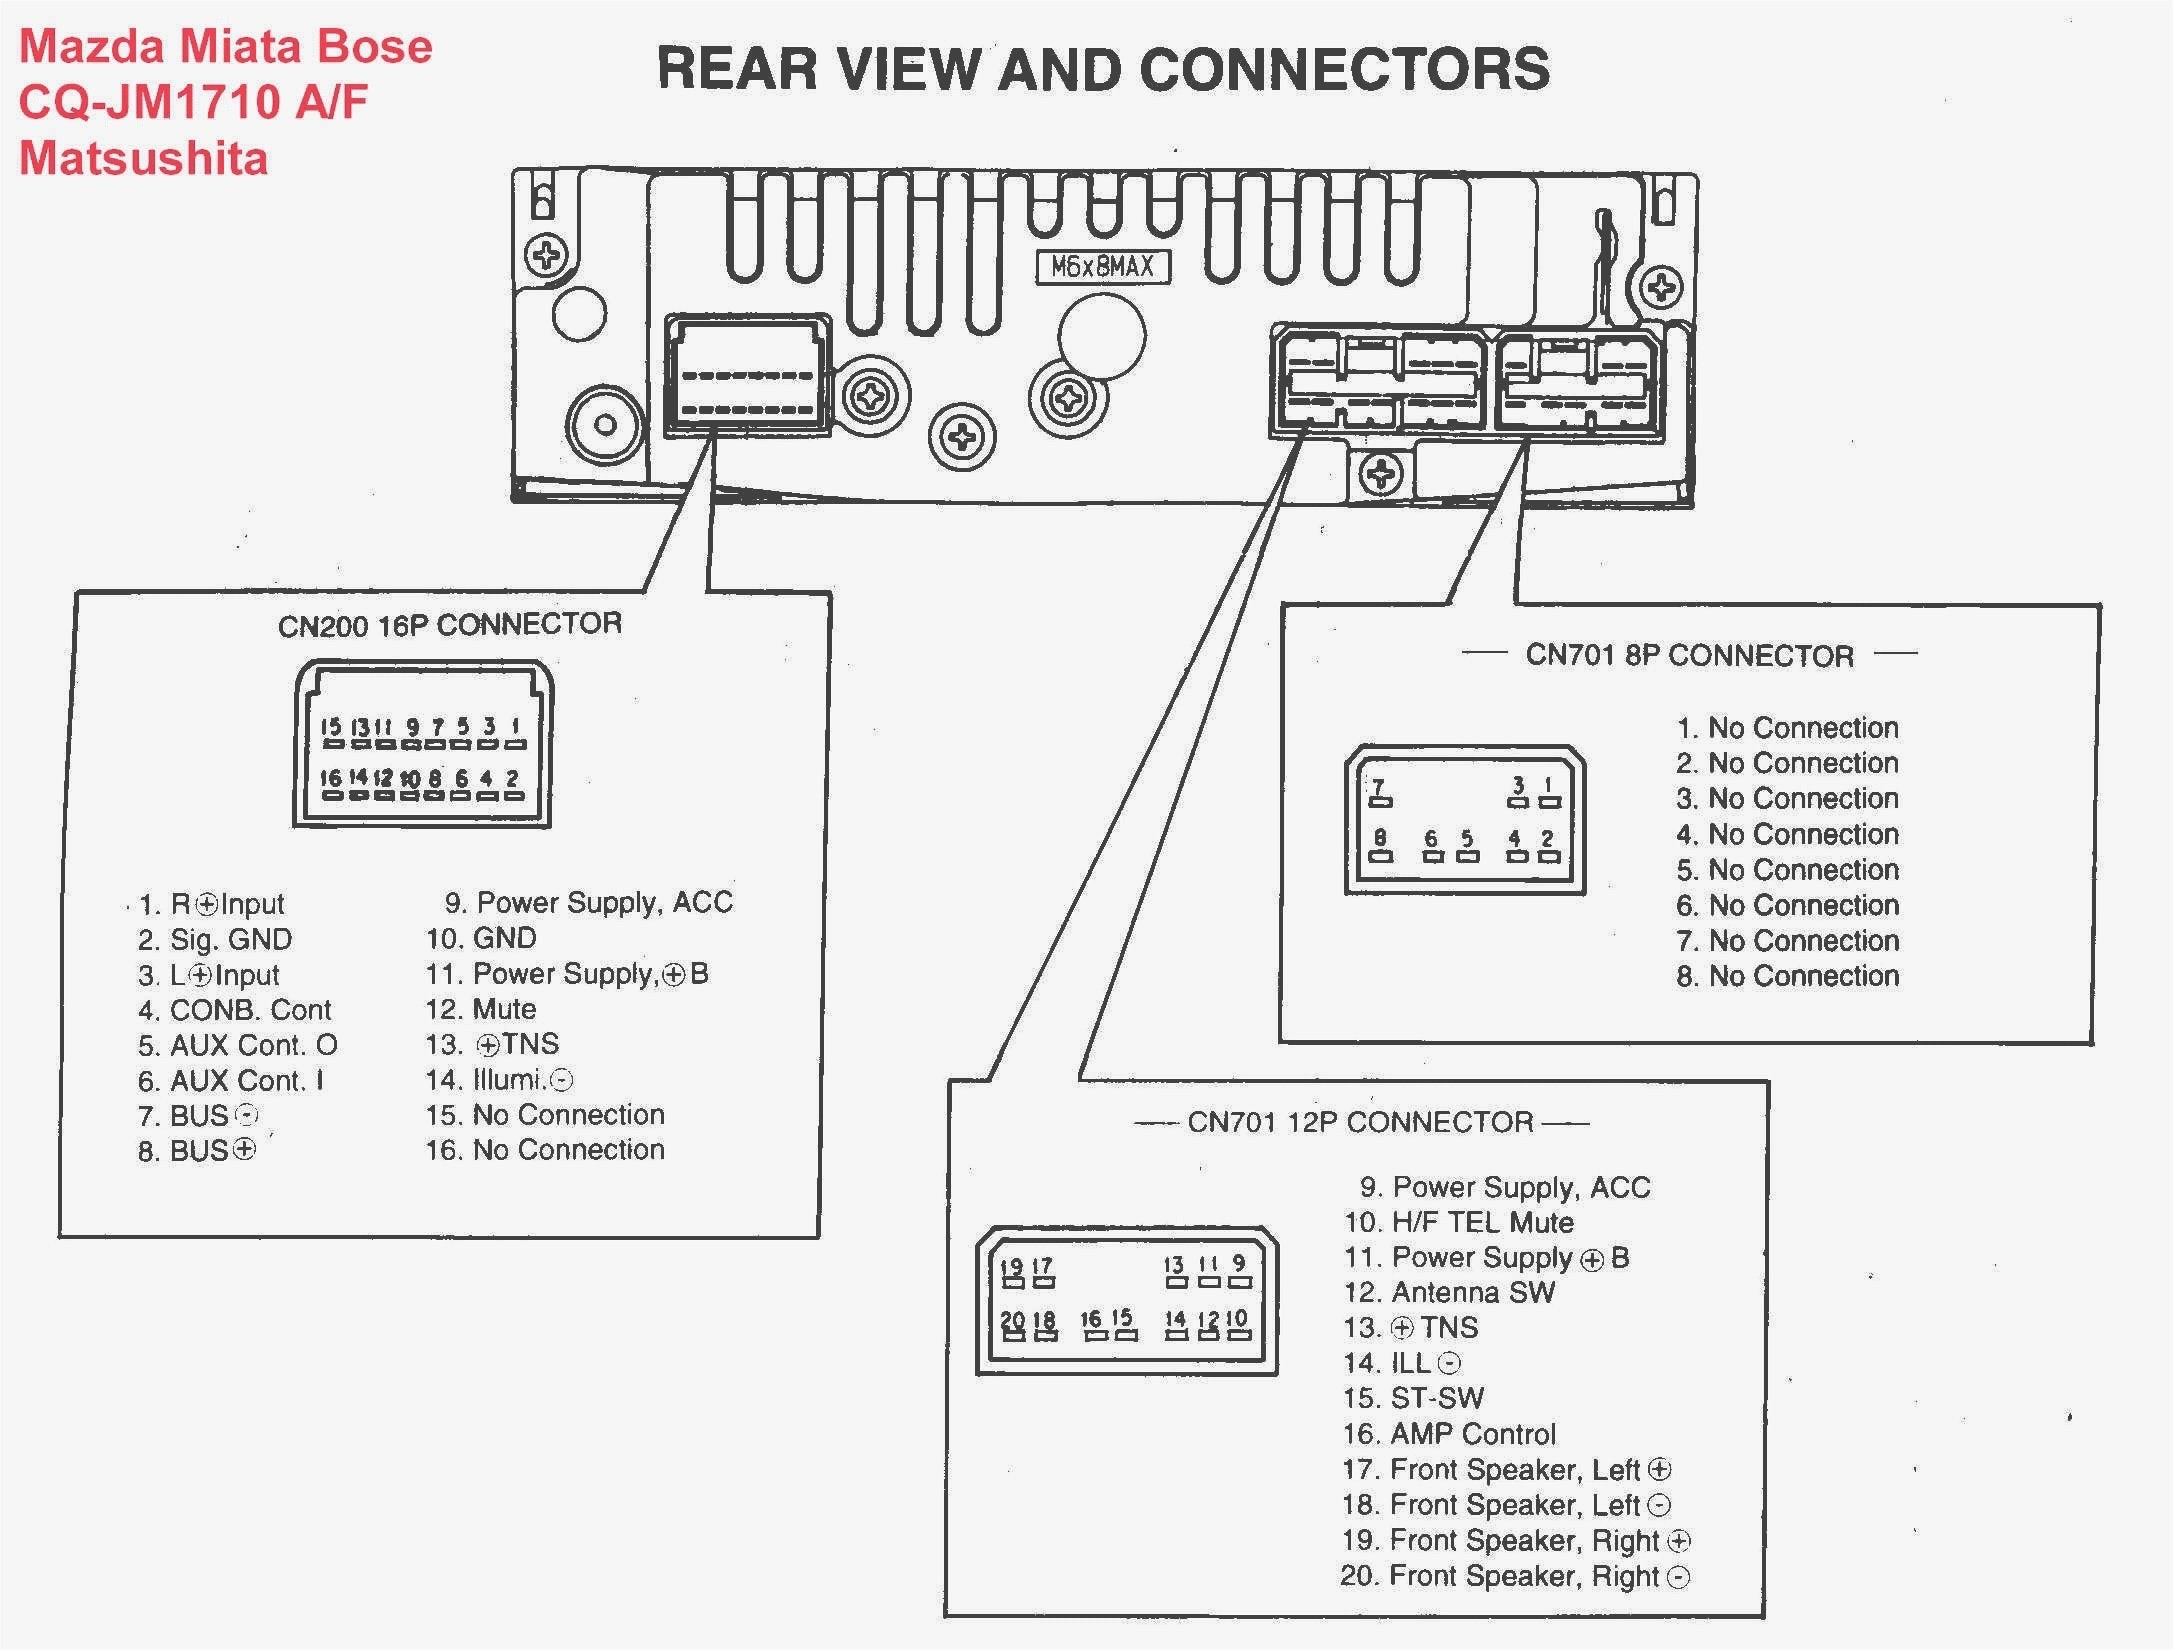 pioneer avh 270bt wiring diagram Download-Pioneer Parking Brake bypass Wiring Diagram Unique Marvellous Pioneer Avh P3400bh Wiring Diagram Best 20-i